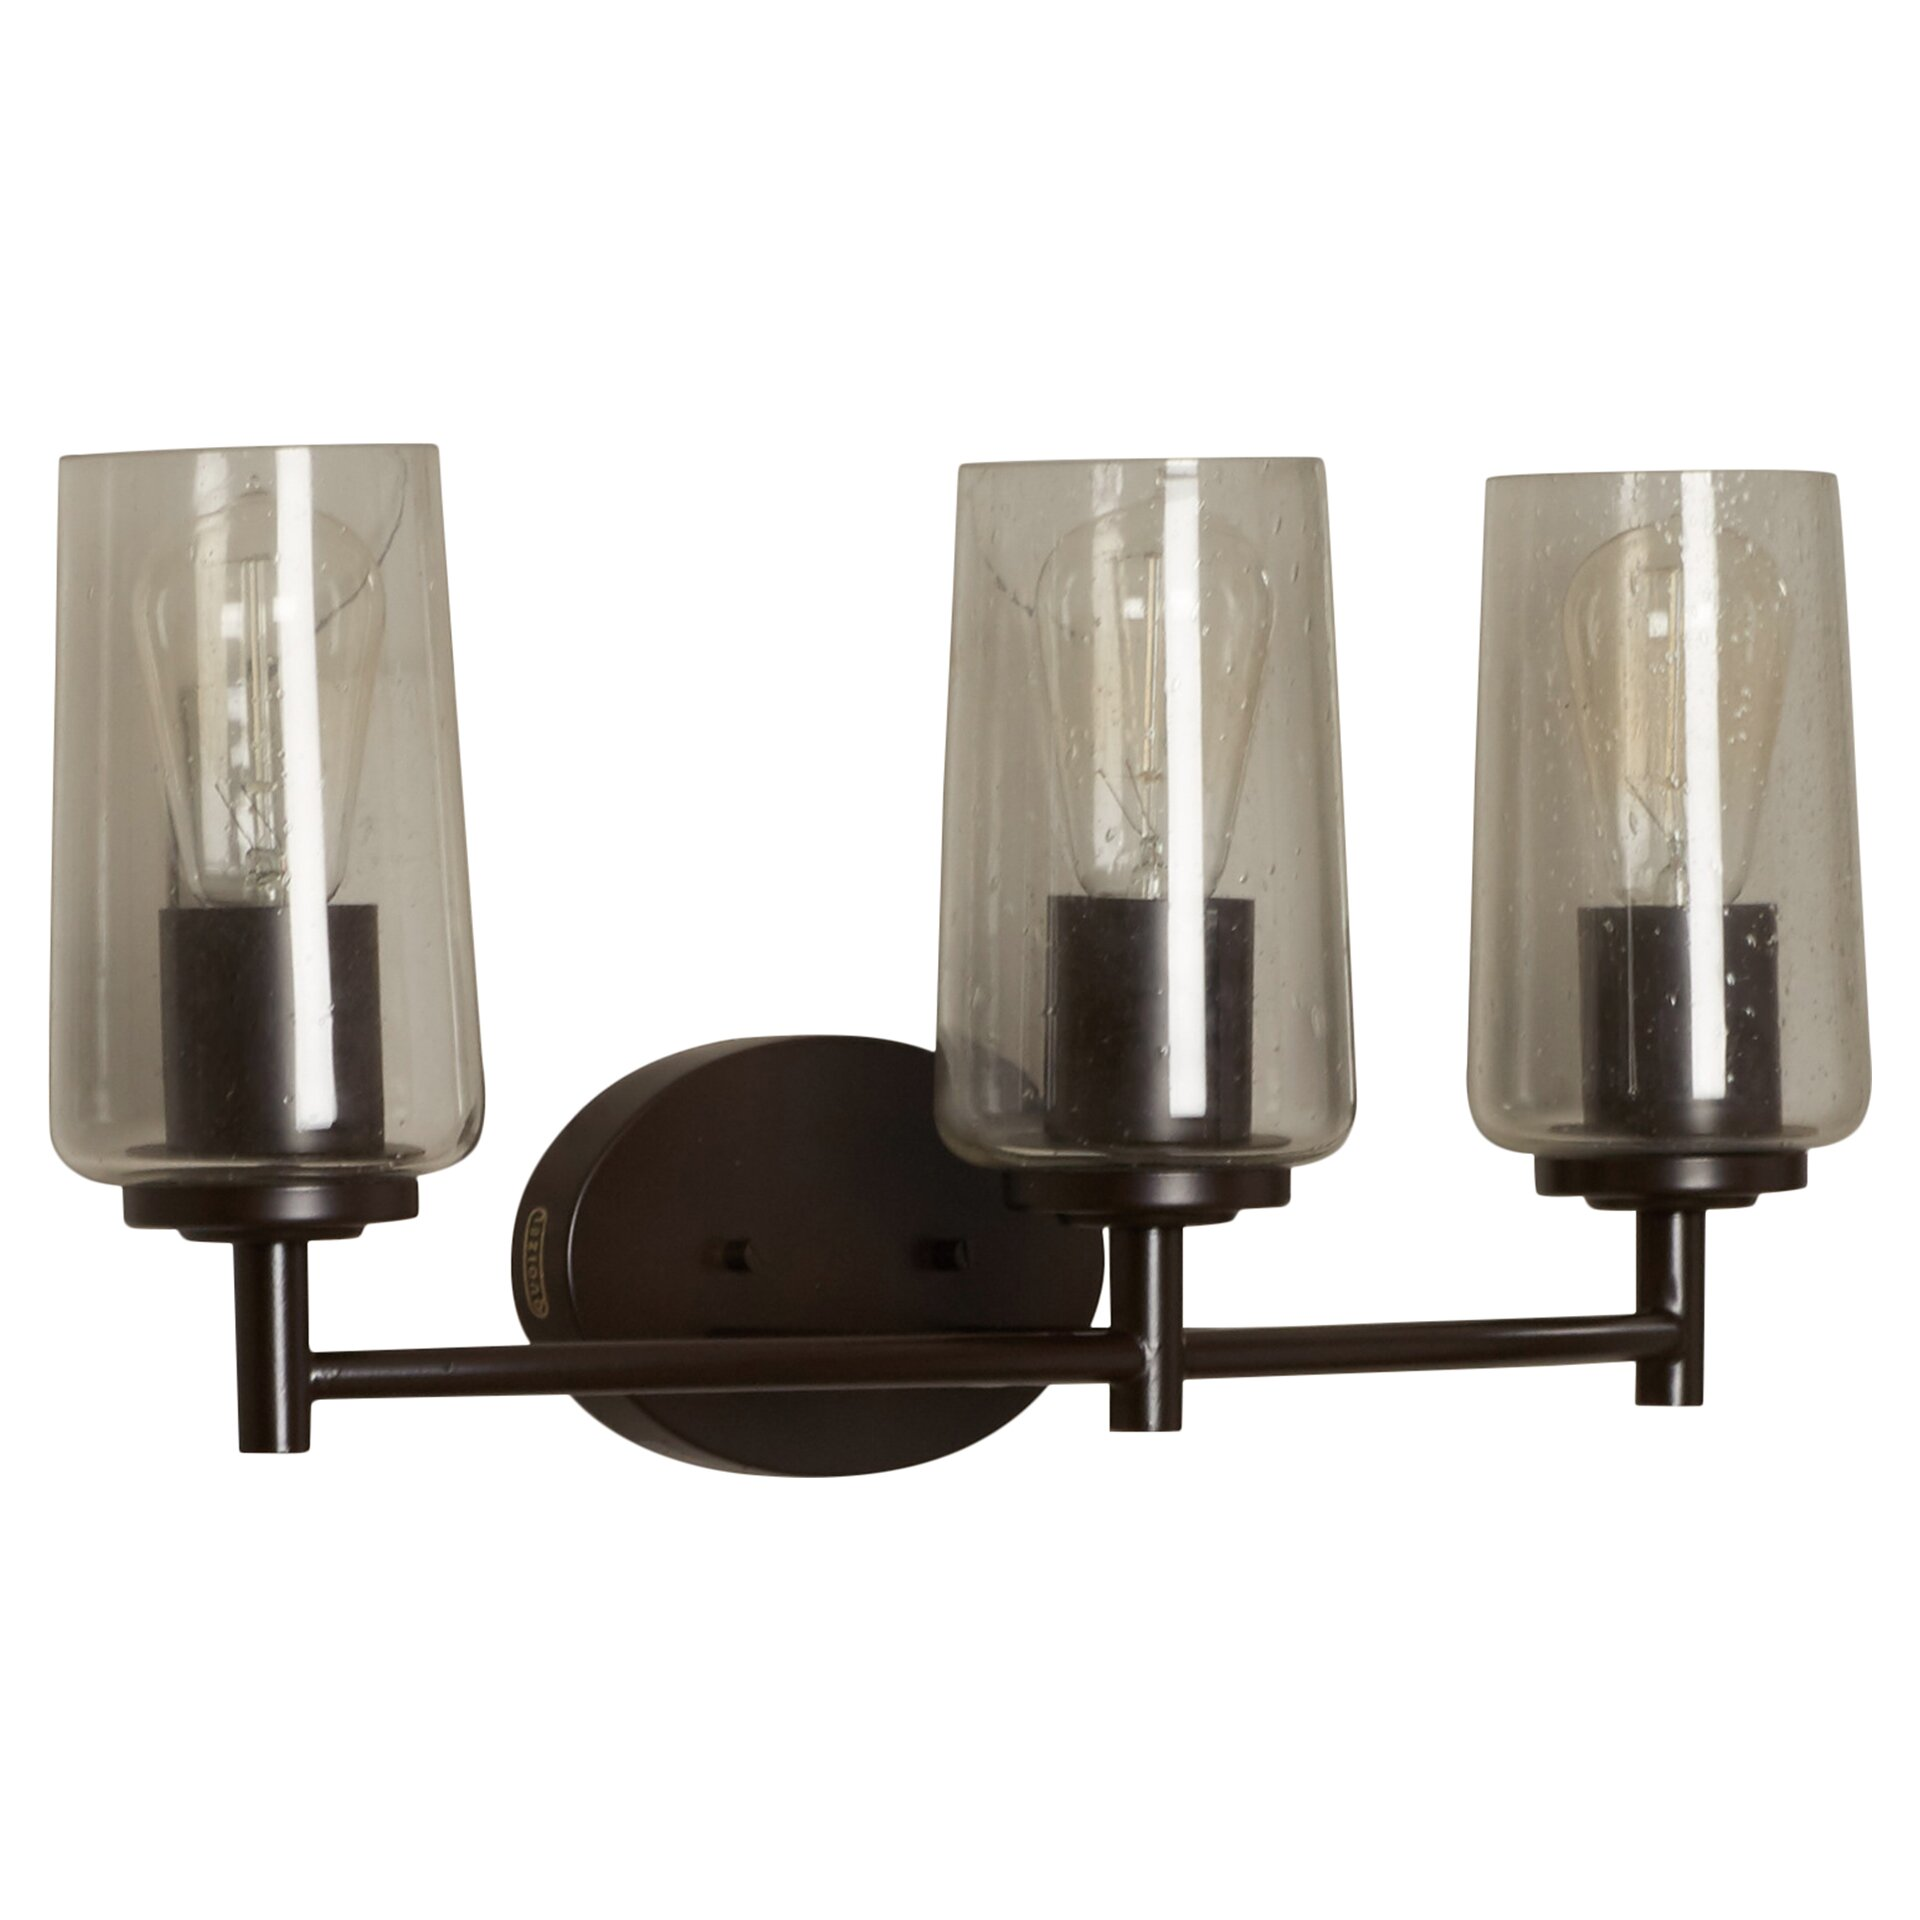 Loring 3 Light Bath Vanity Light by Trent Austin Design